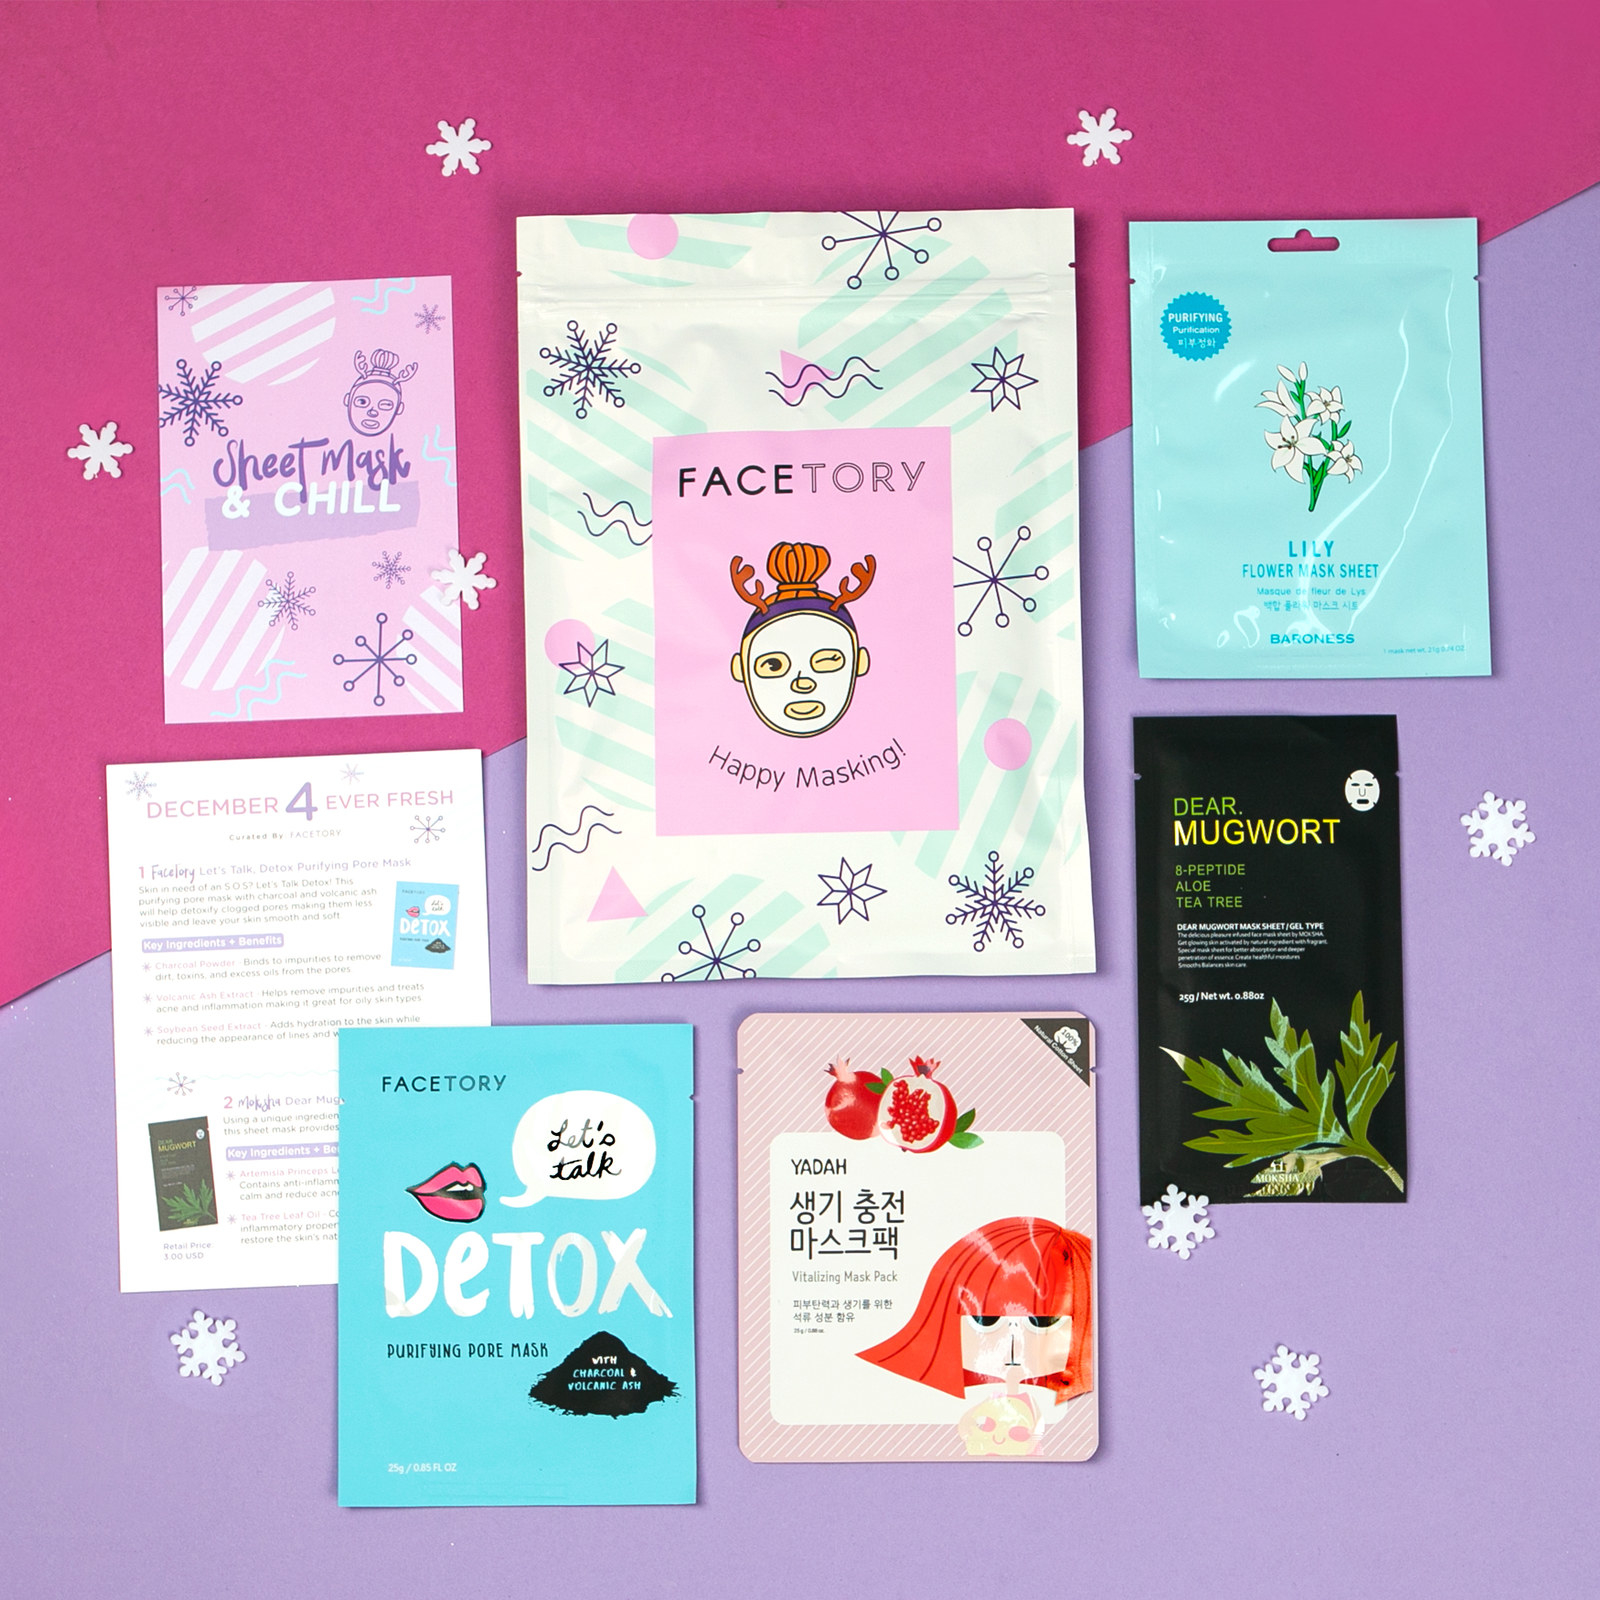 The set of seven sheet masks